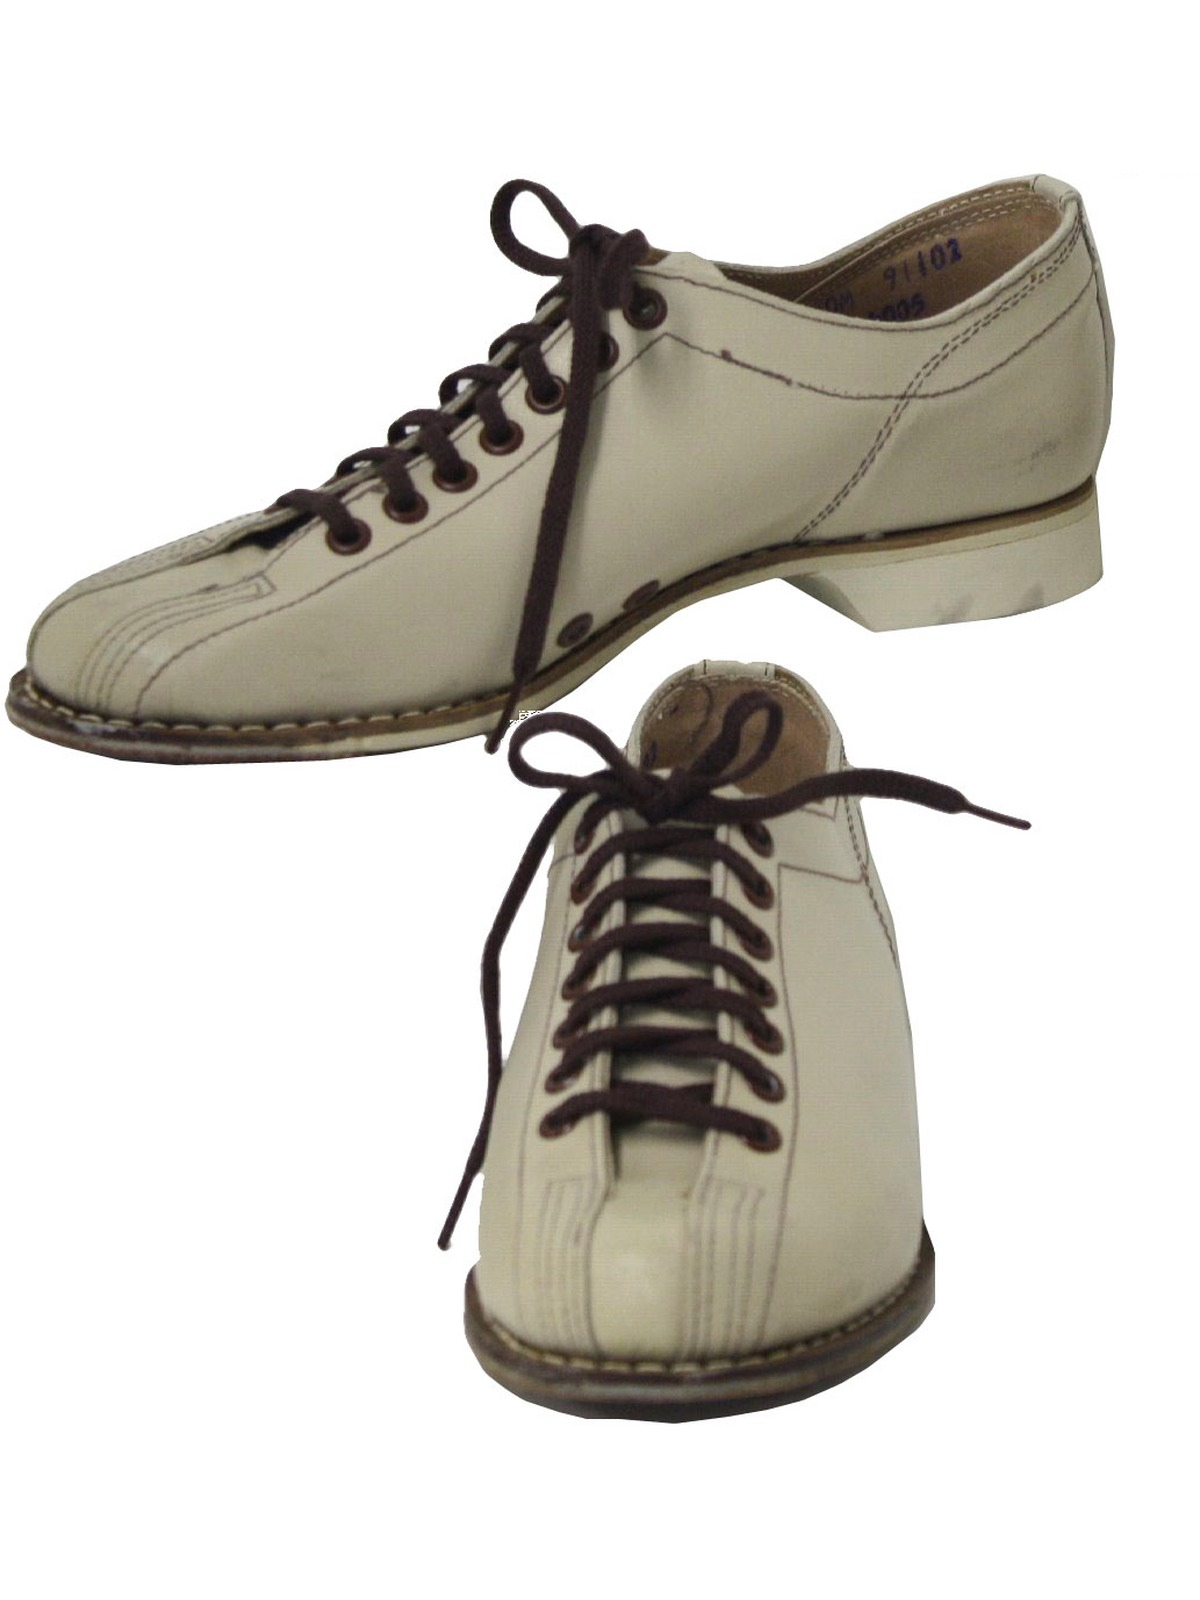 shoes 60s midsco athletics womens ivory smooth leather bowling shoes